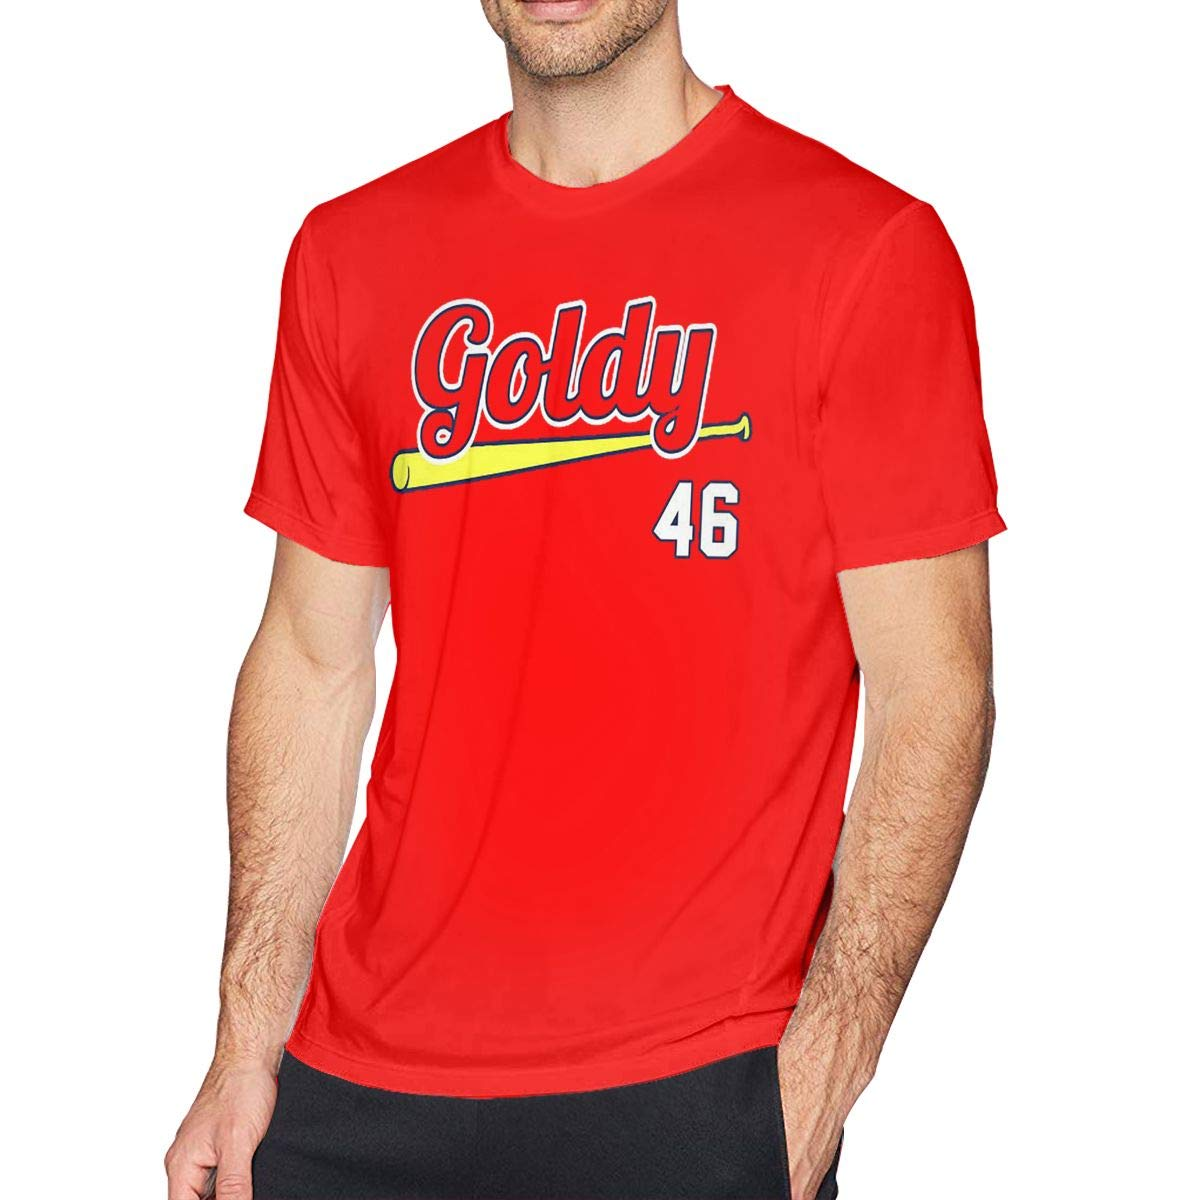 Red St Louis Goldschmidt Goldy S Short Sleeve Tshirt Comfortable Red